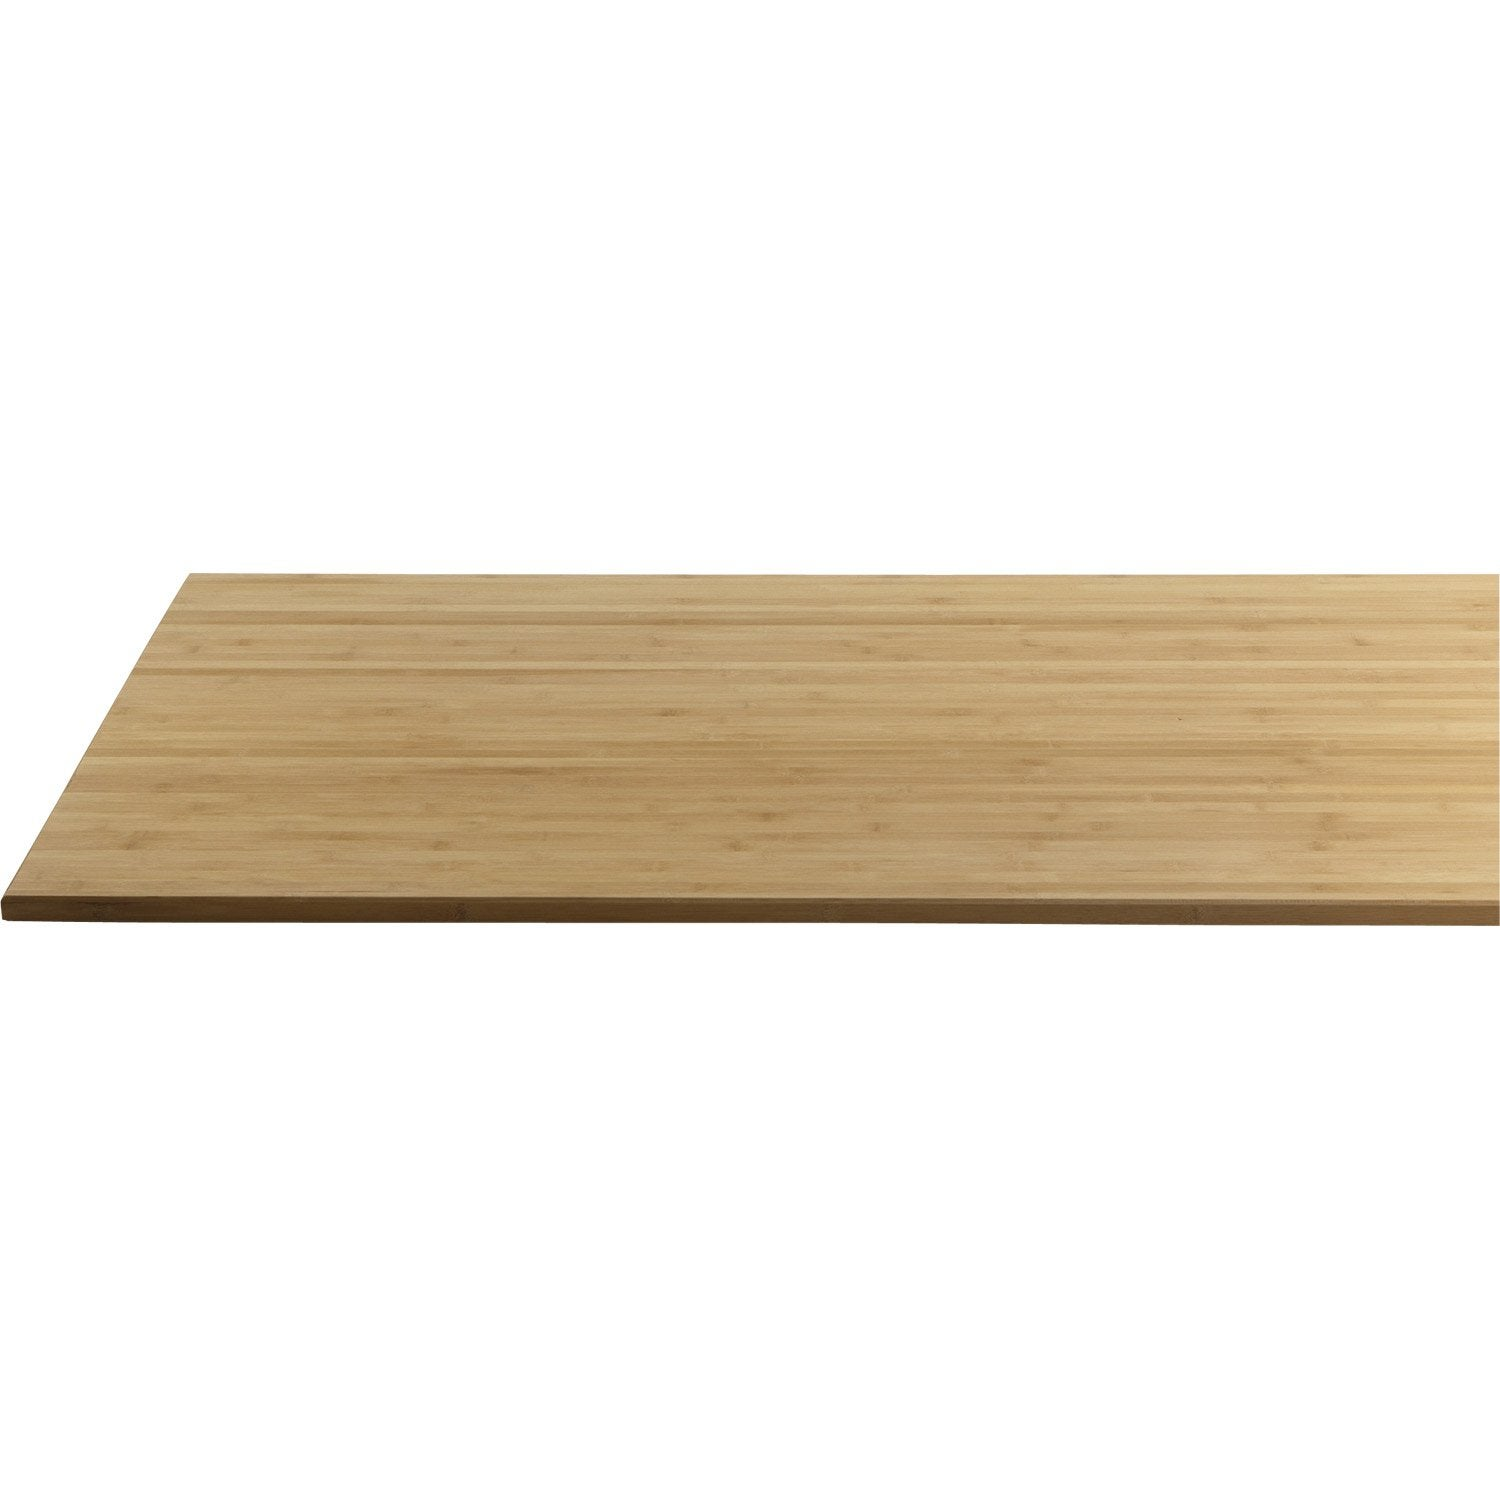 Plateau De Table Bambou L 160 X L 80 Cm X Ep 22 Mm